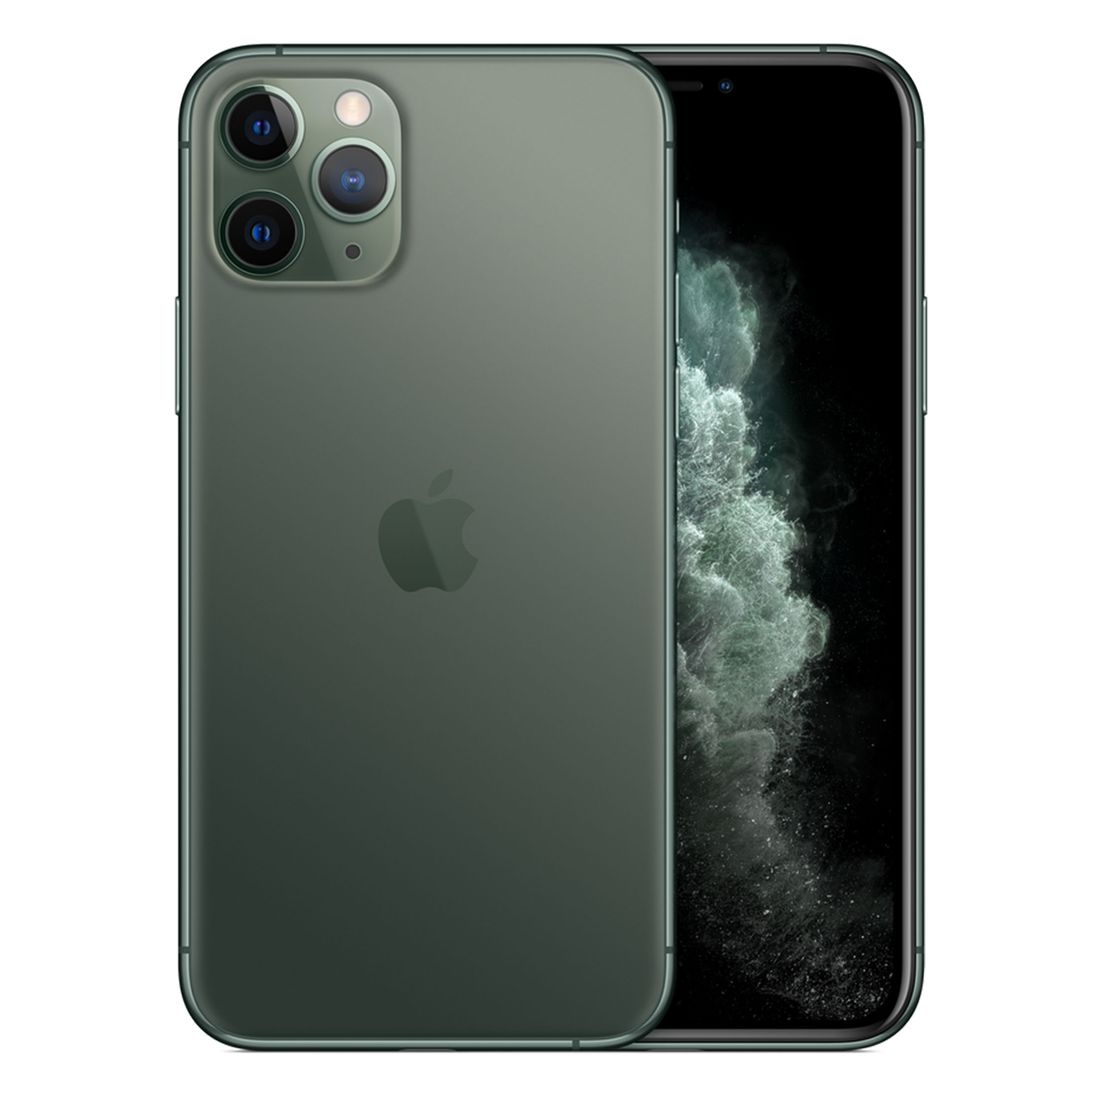 Apple iPhone 11 Pro 256GB - Midnight Green